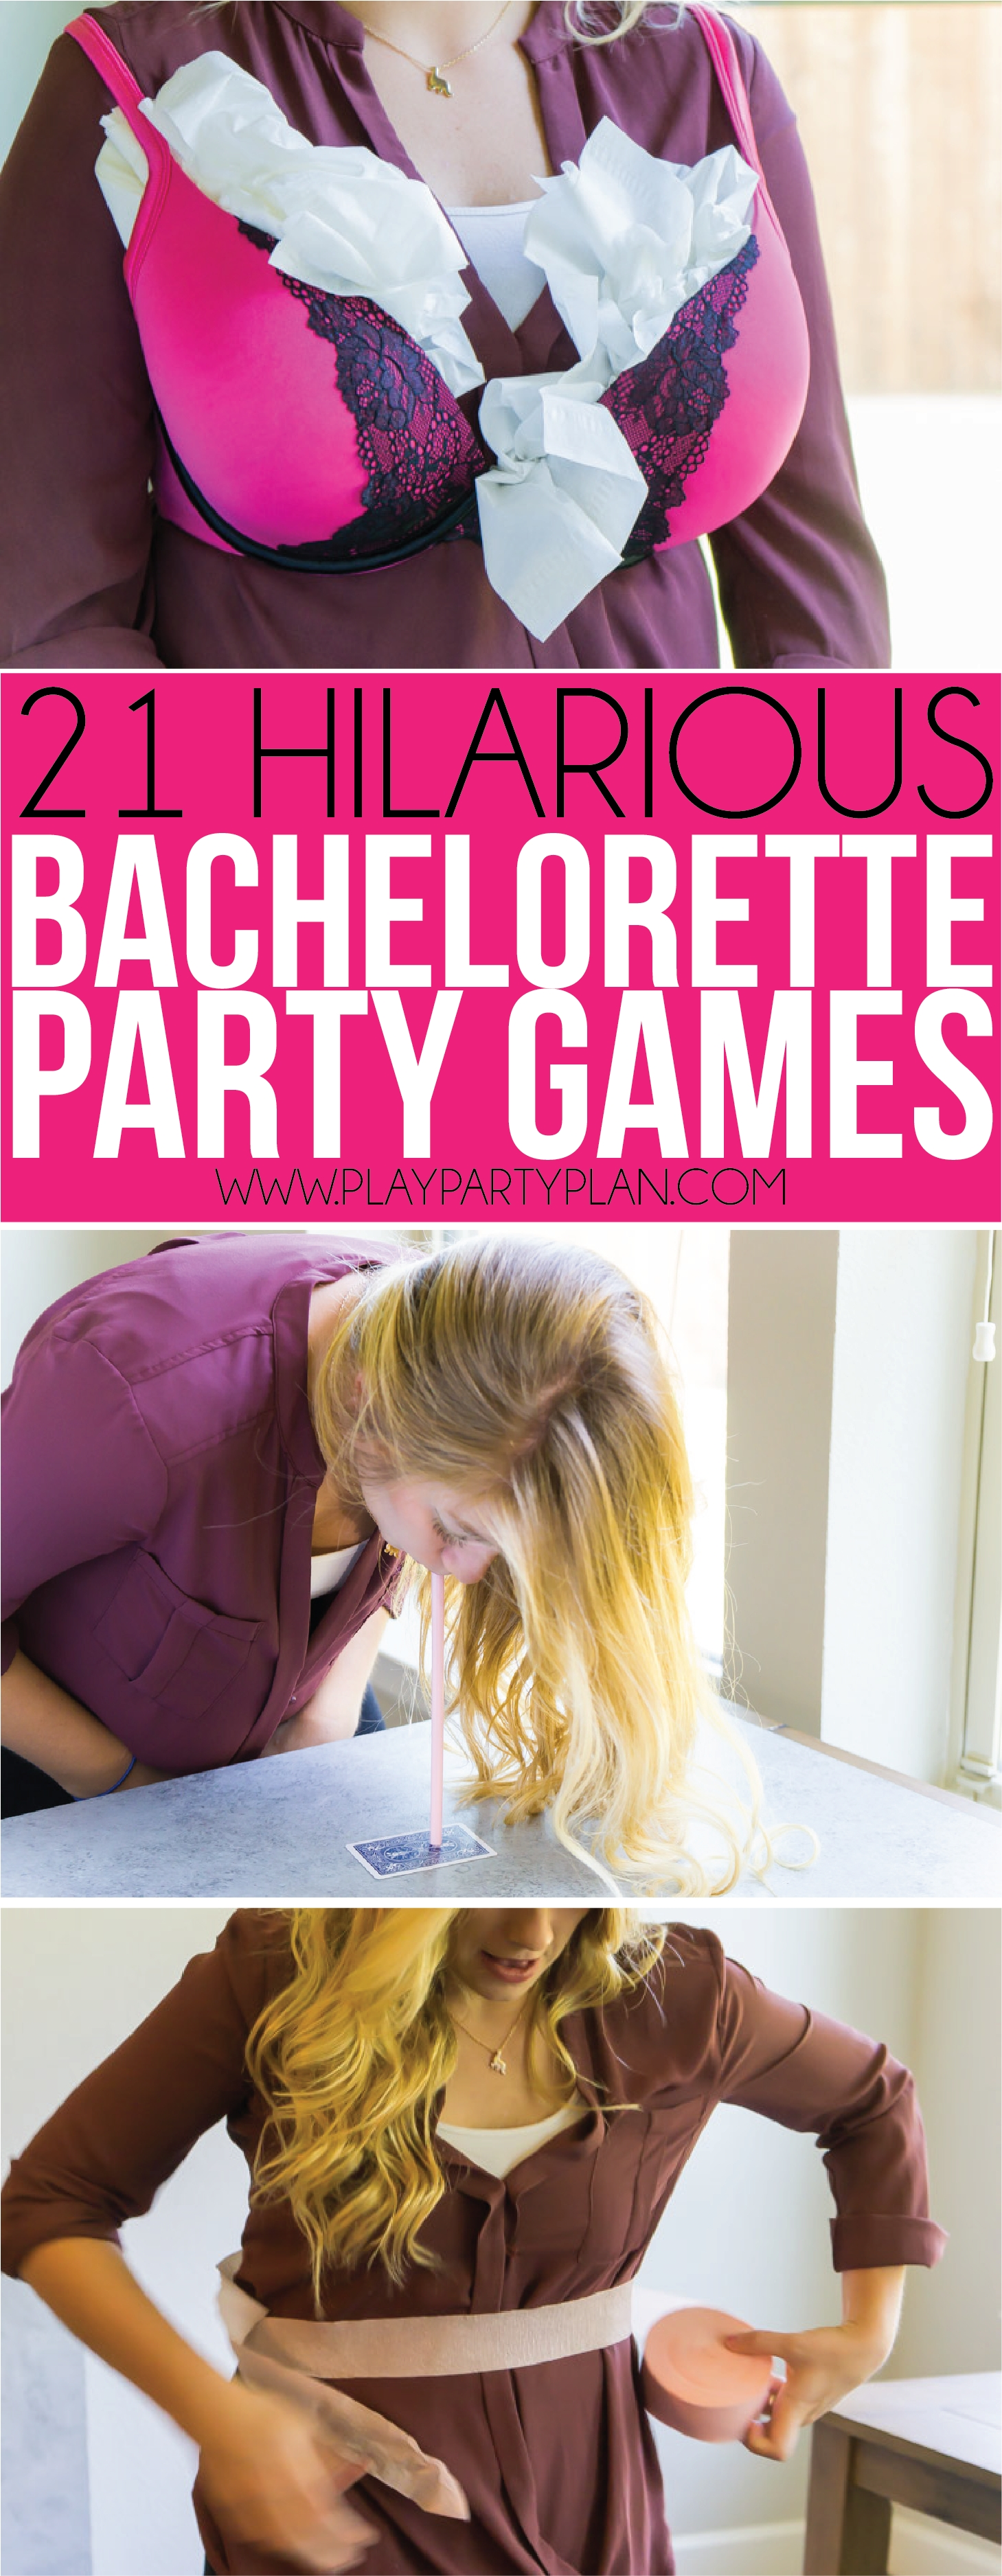 10 Most Popular Bachelorette Party Ideas For Under 21 21 hilarious bachelorette party games that are clean classy and 2021